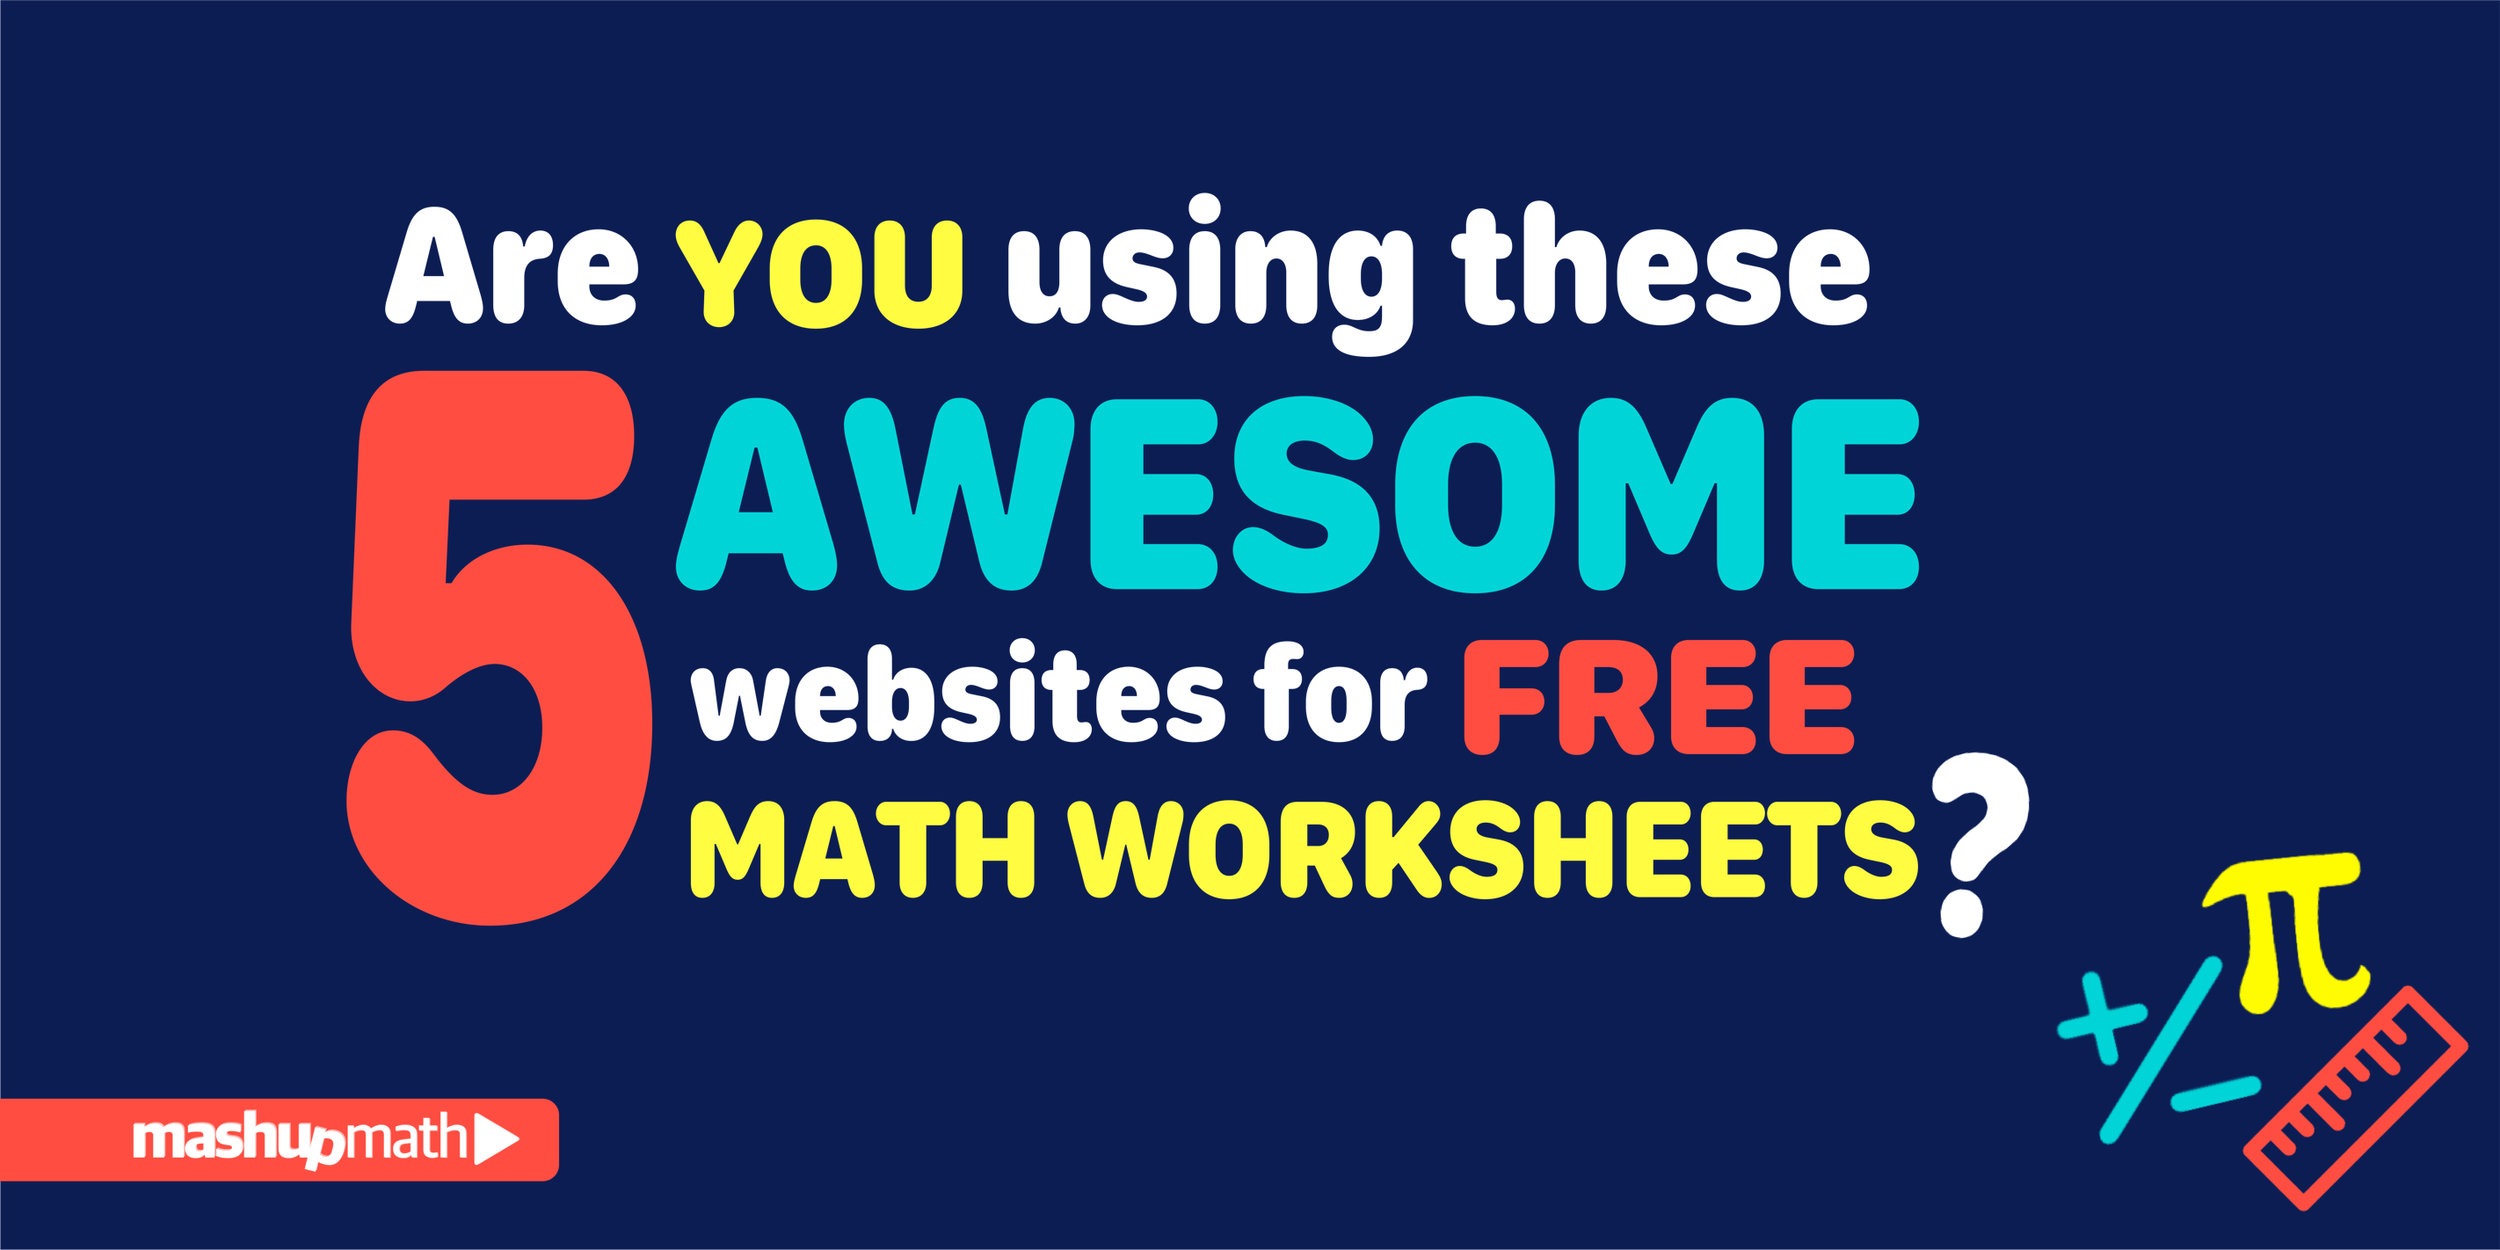 Are You Using These 5 Awesome Websites For Free Math